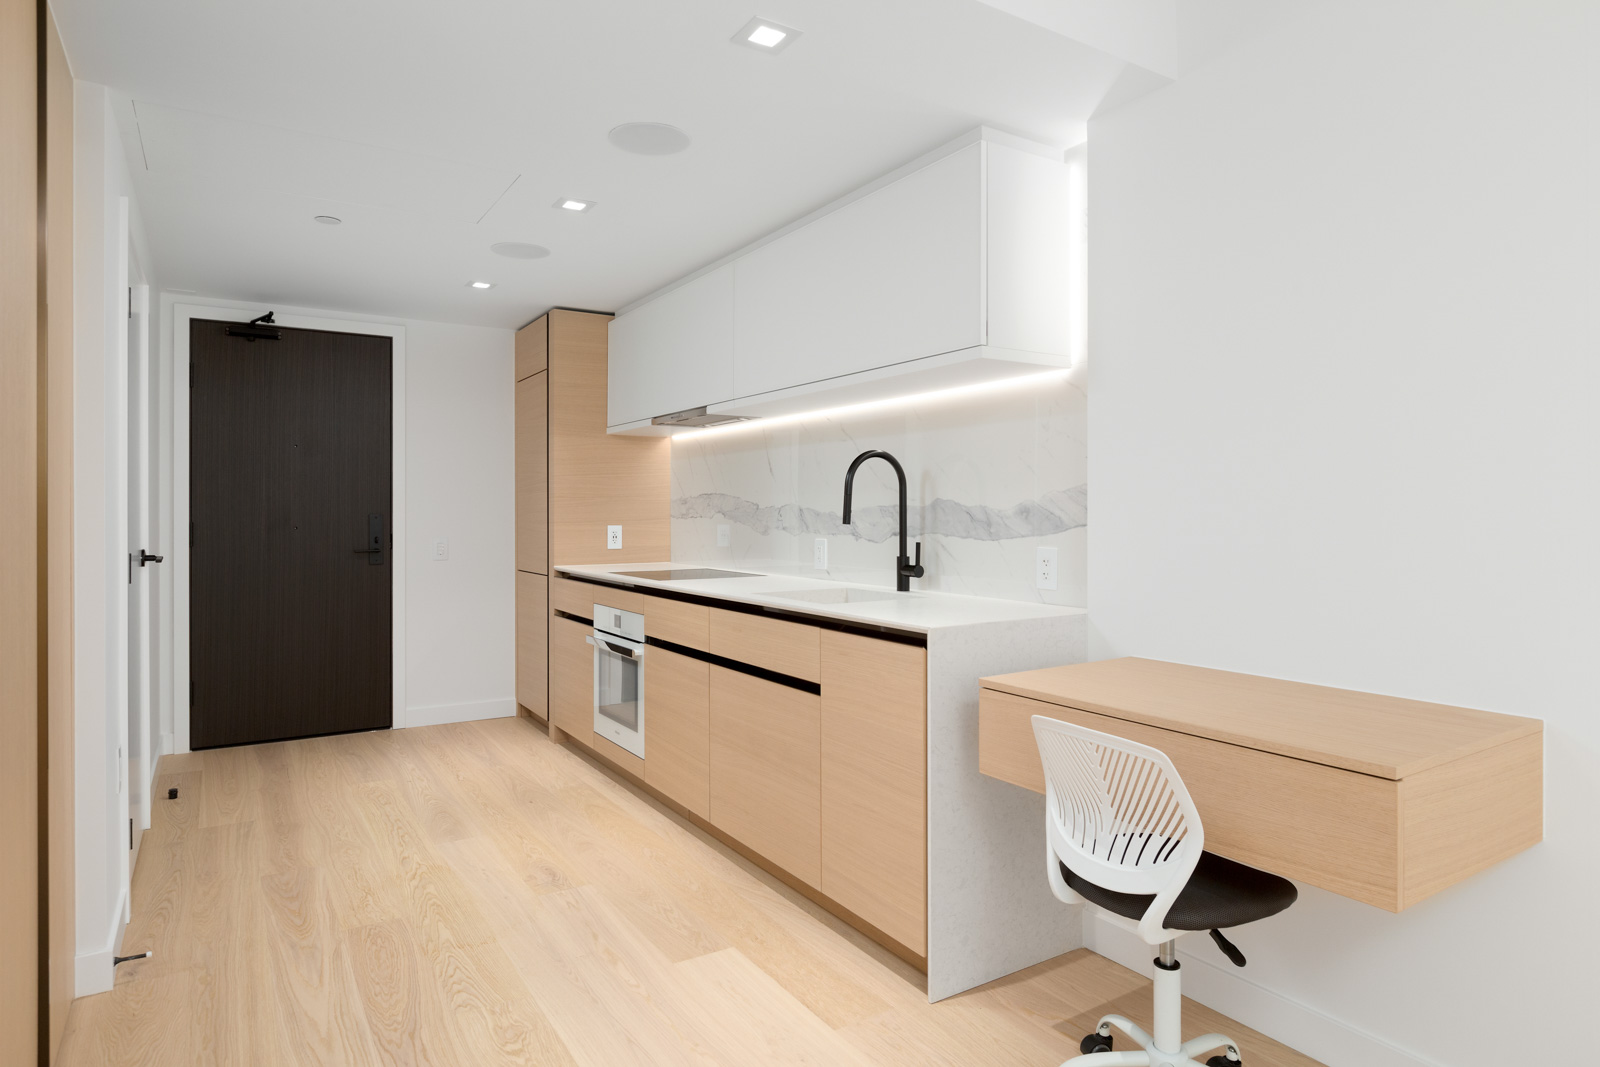 rental condo in brand new cardero building designed by henriquez partners architects in coal harbour in downtown vancouver